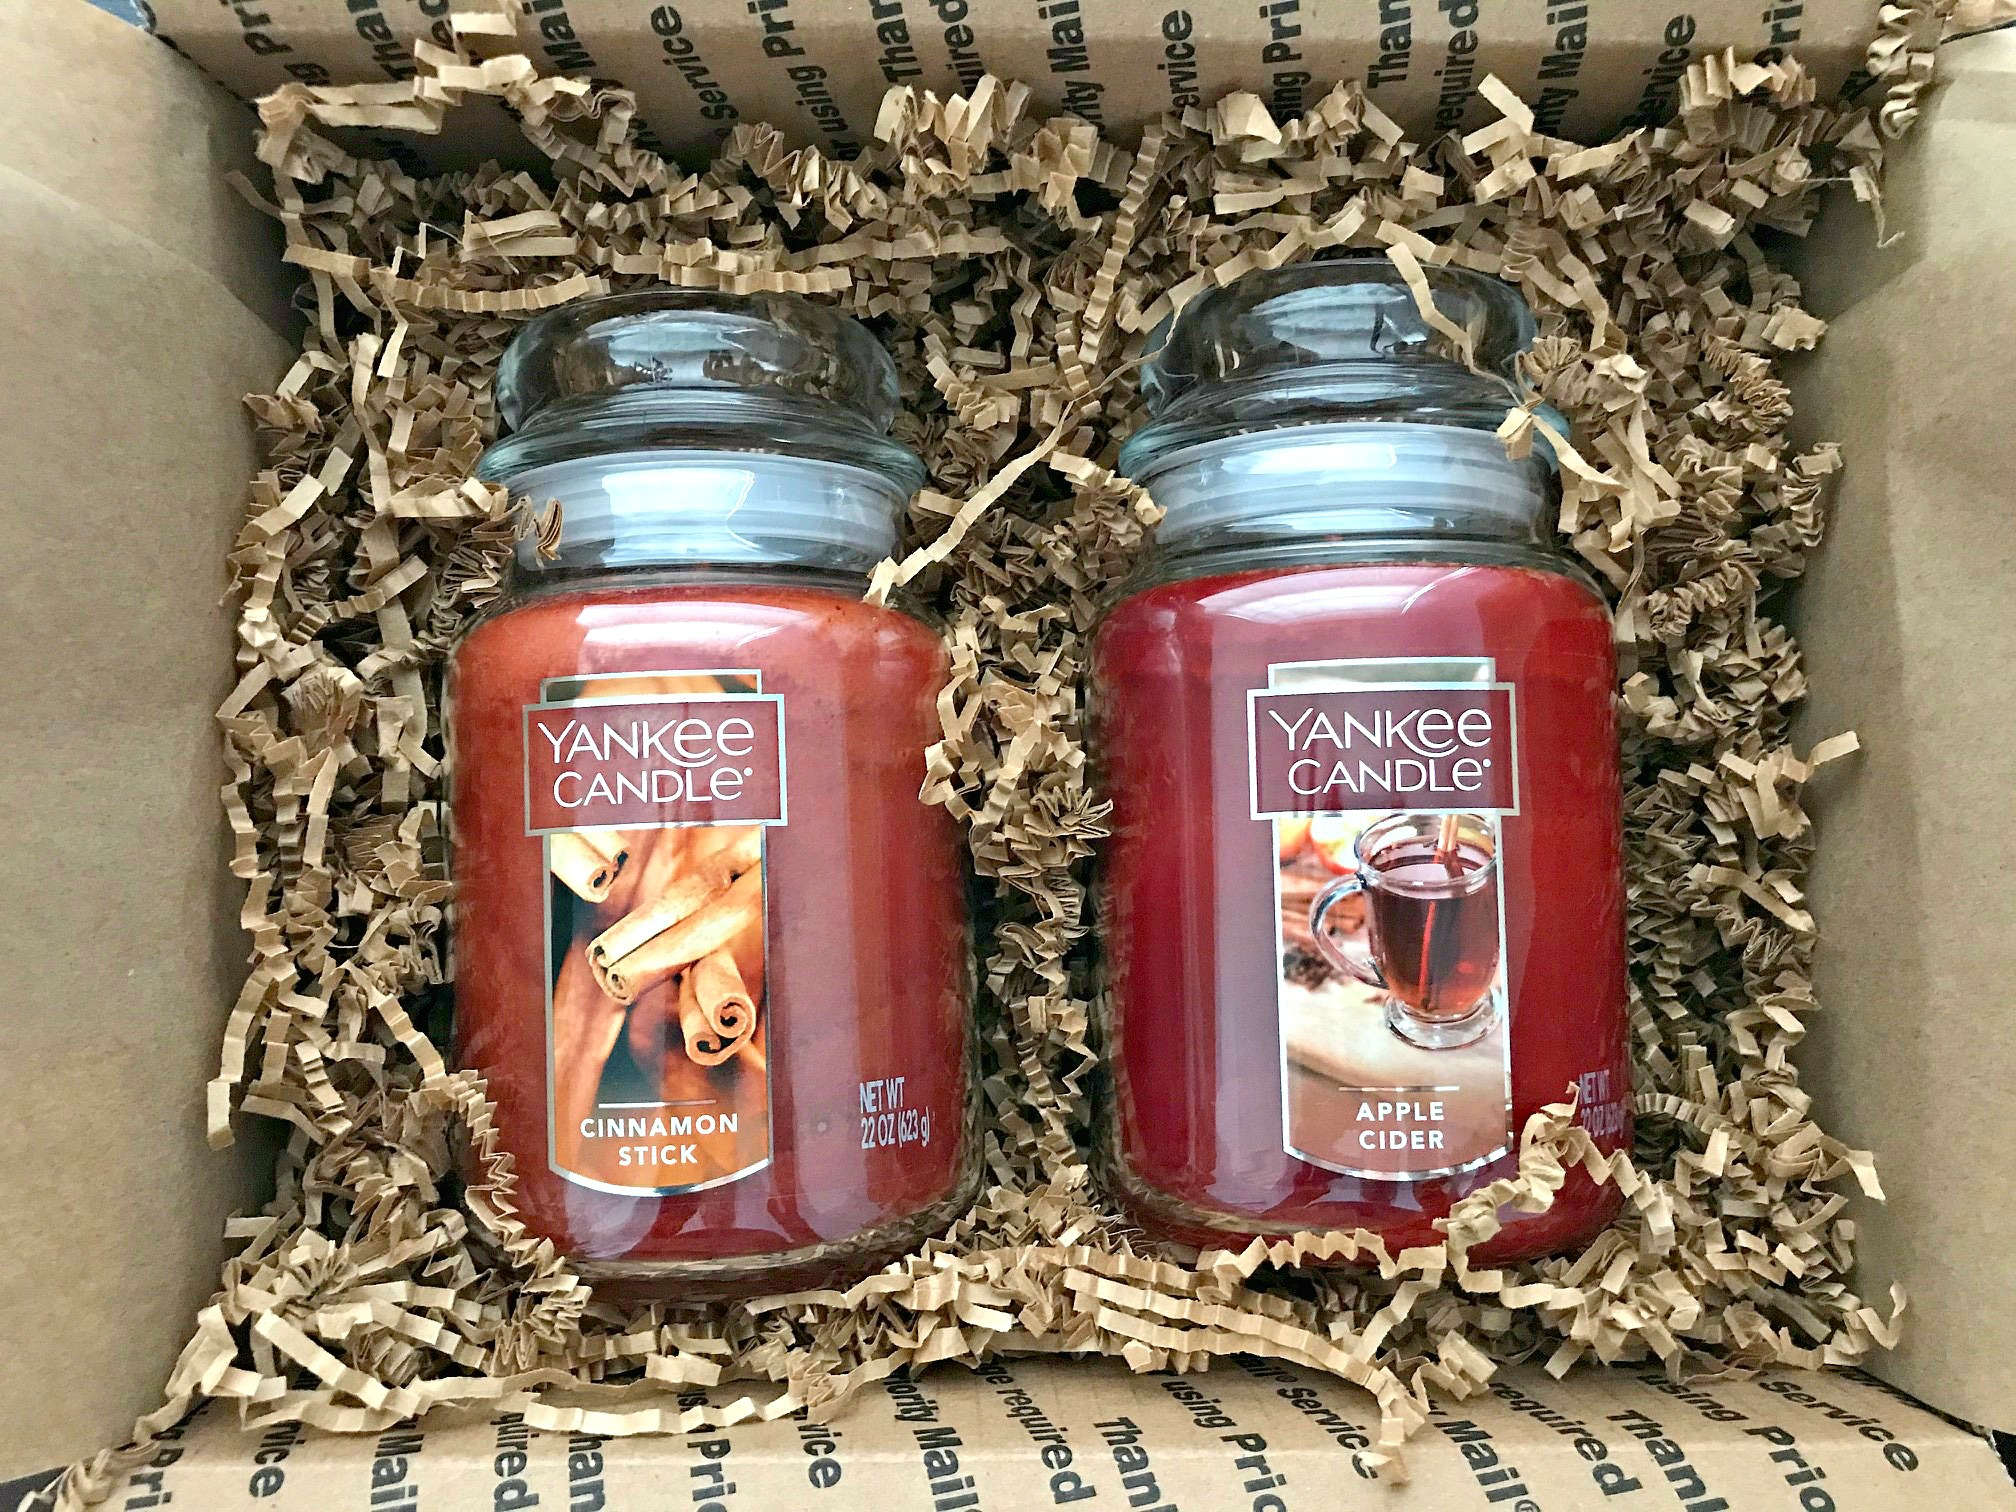 Giveaway: Cinnamon Stick and Apple Cider Candles